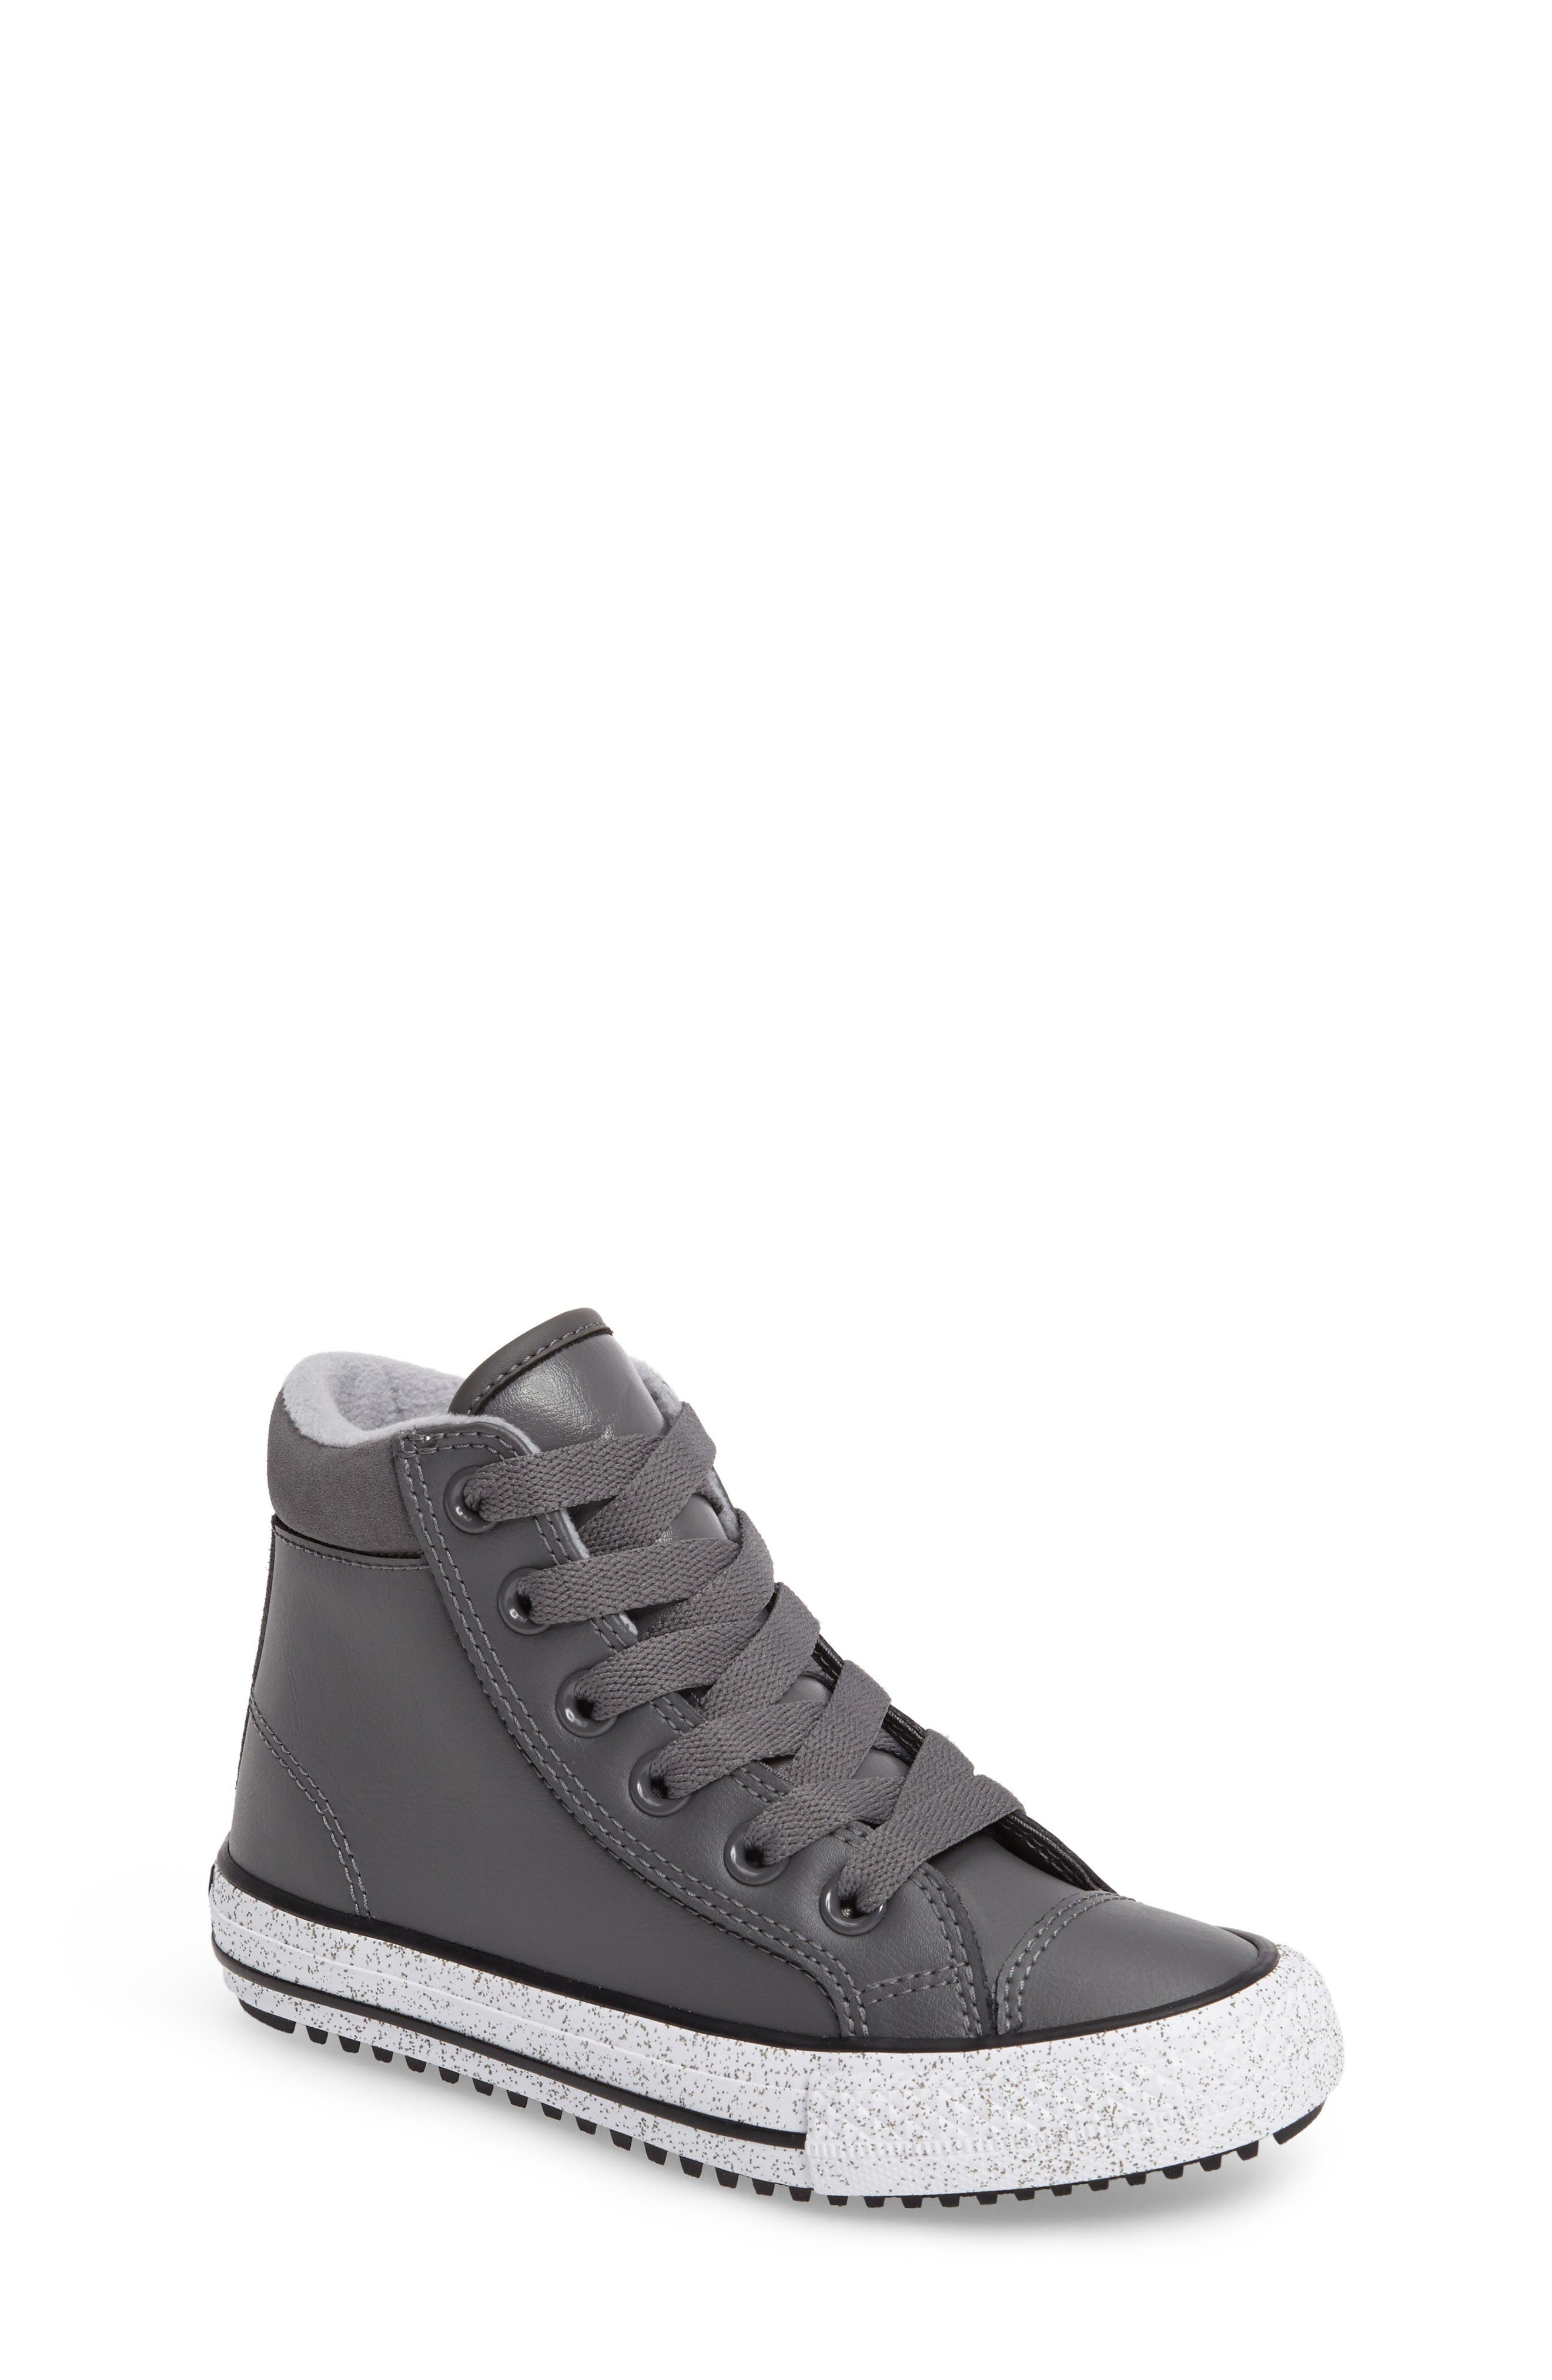 Alternate Image 1 Selected - Converse Chuck Taylor® All Star® PC High Top Sneaker (Toddler, Little Kid & Big Kid)